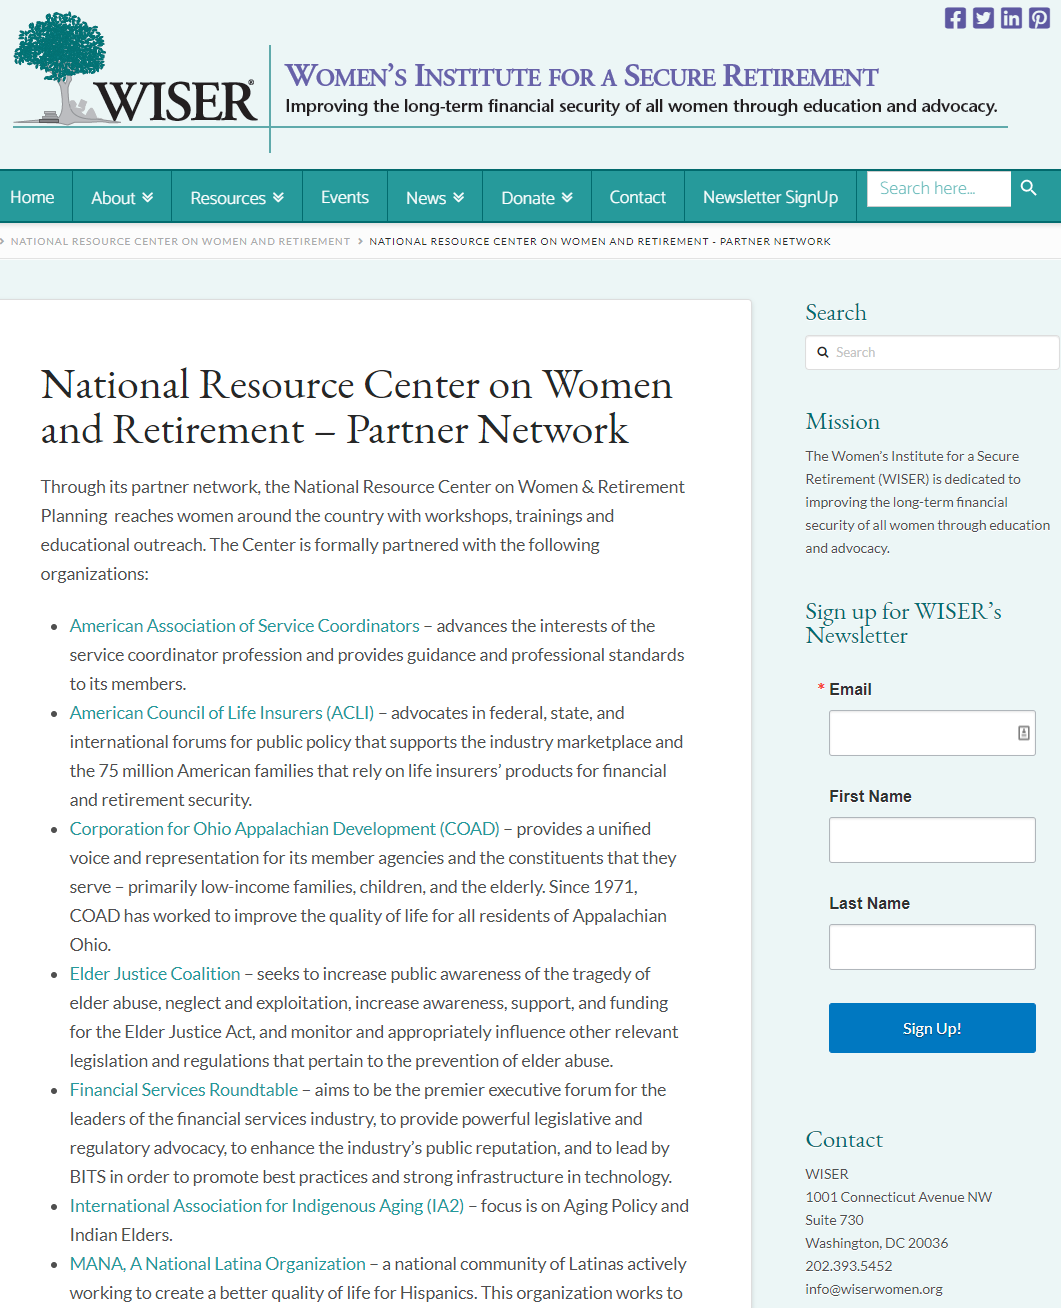 National Resource Center on Women and Retirement